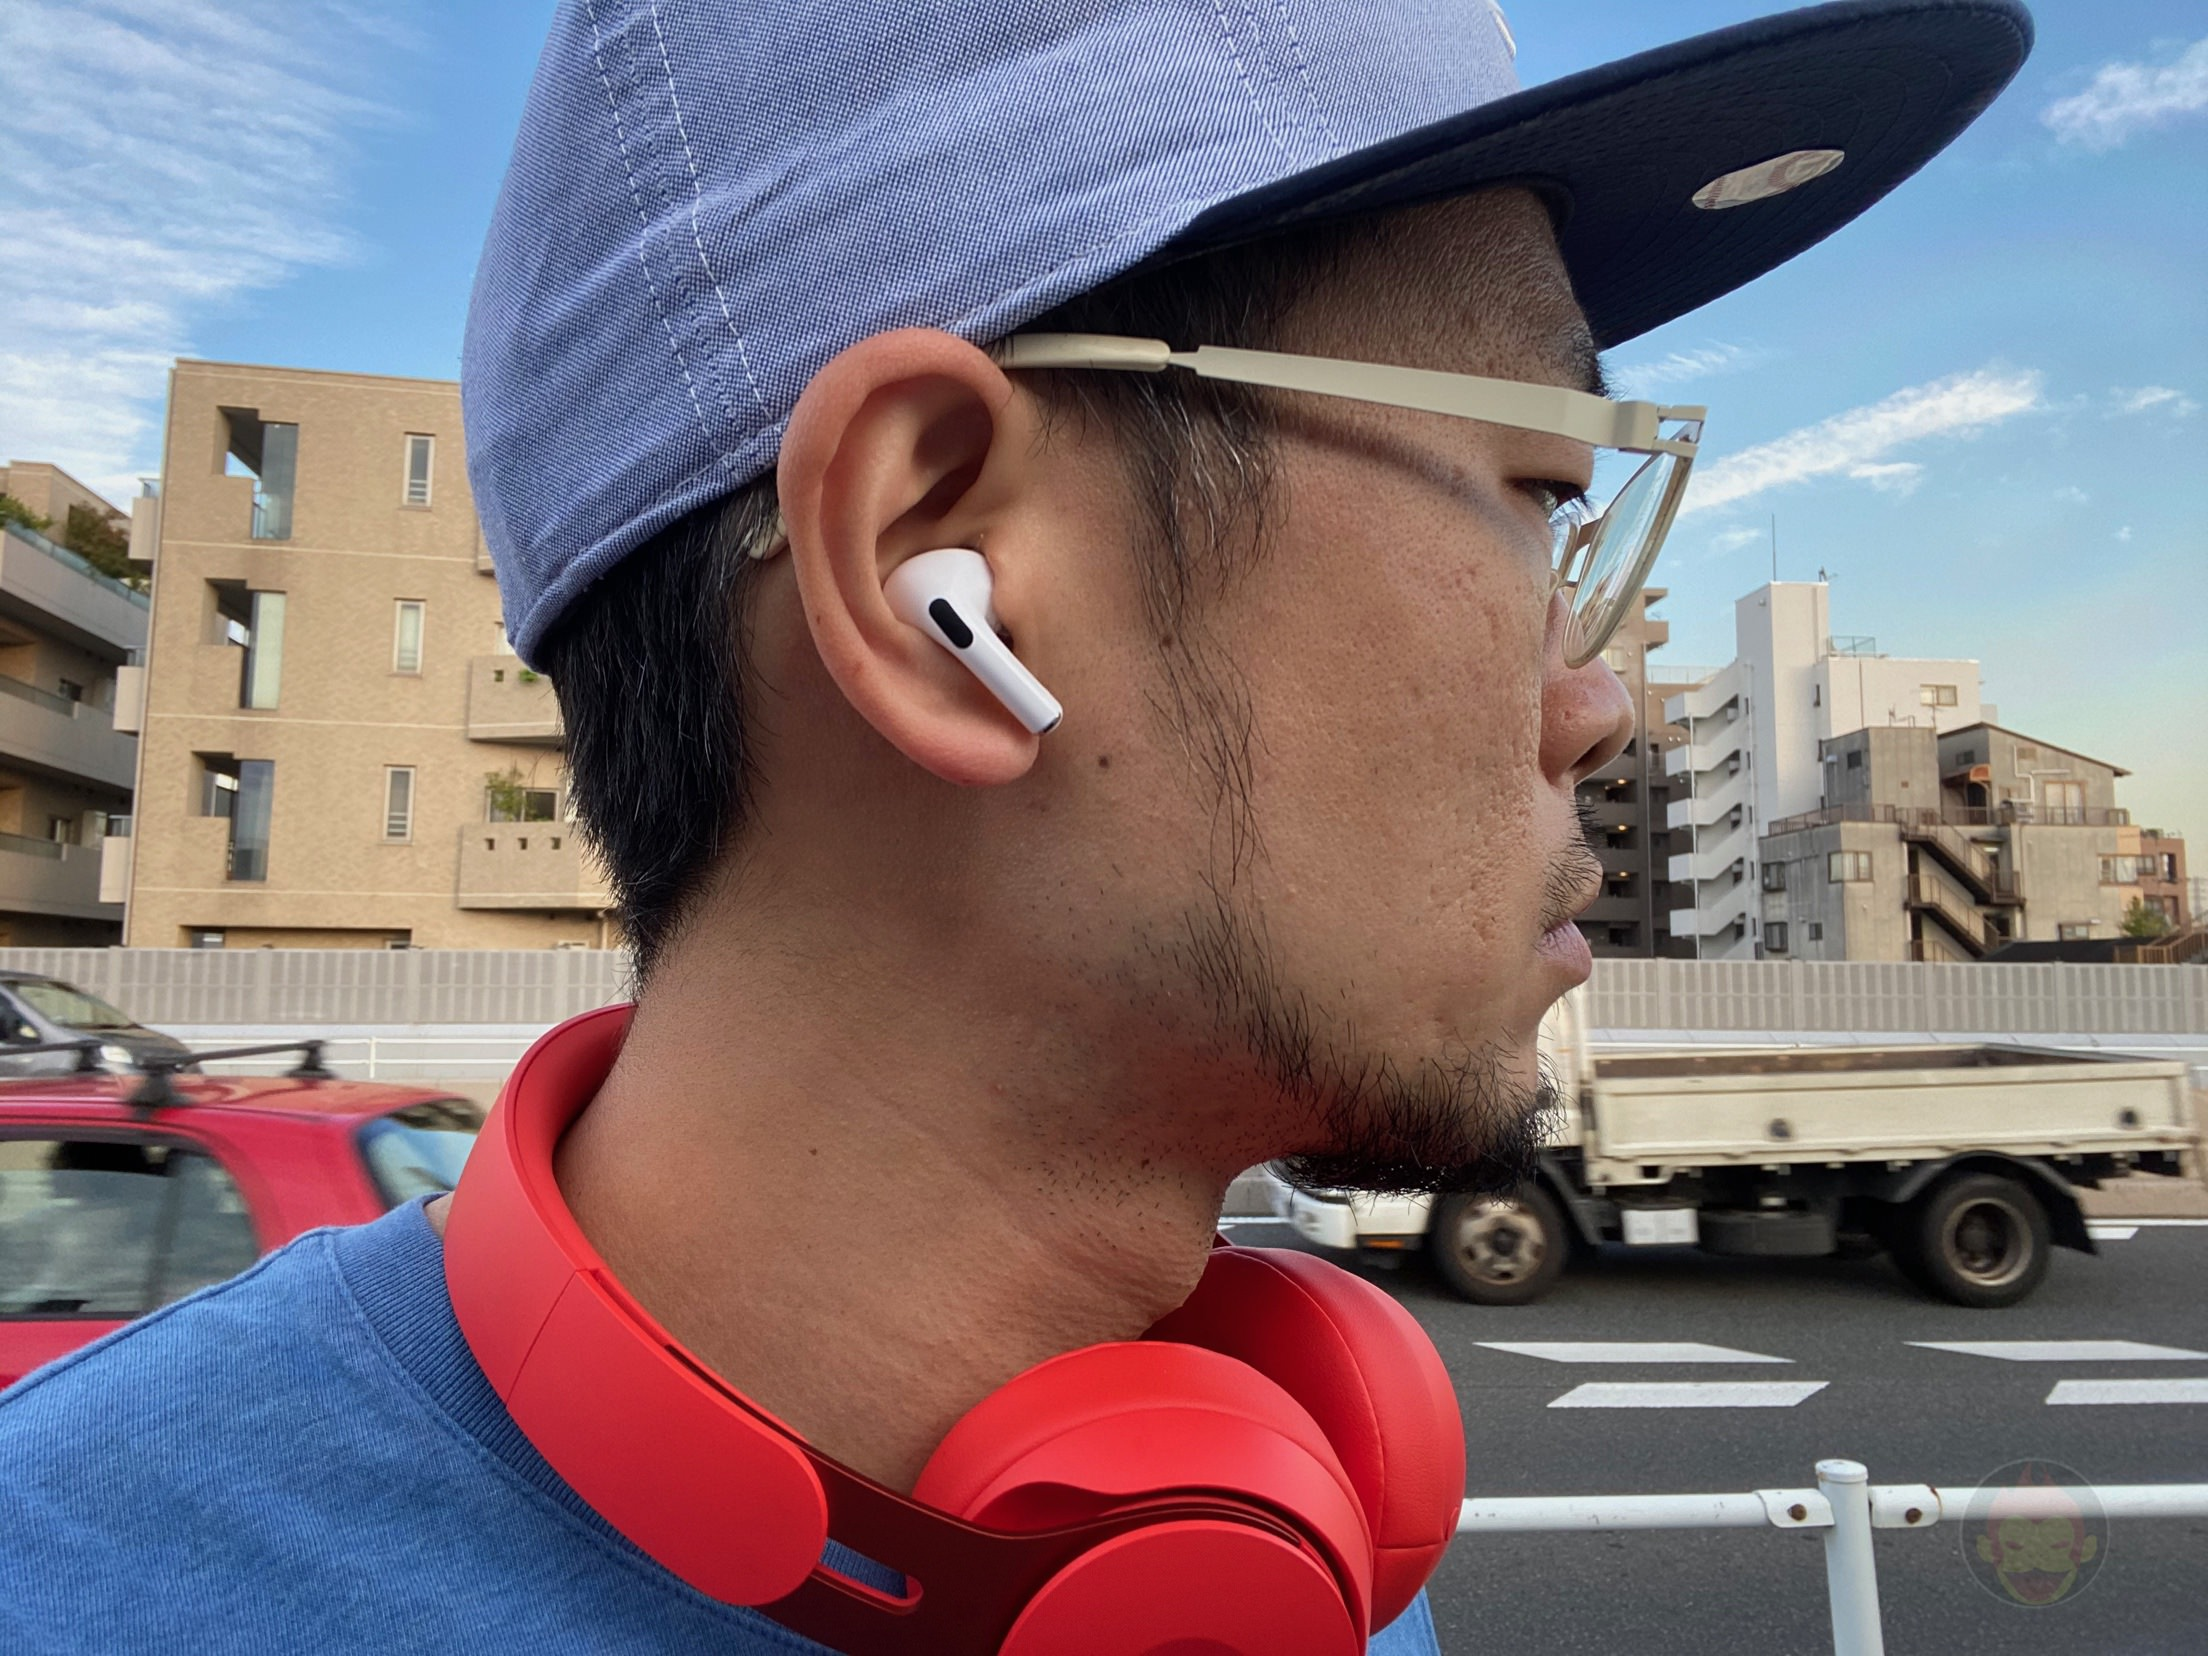 Using AirPods Pro outside 12